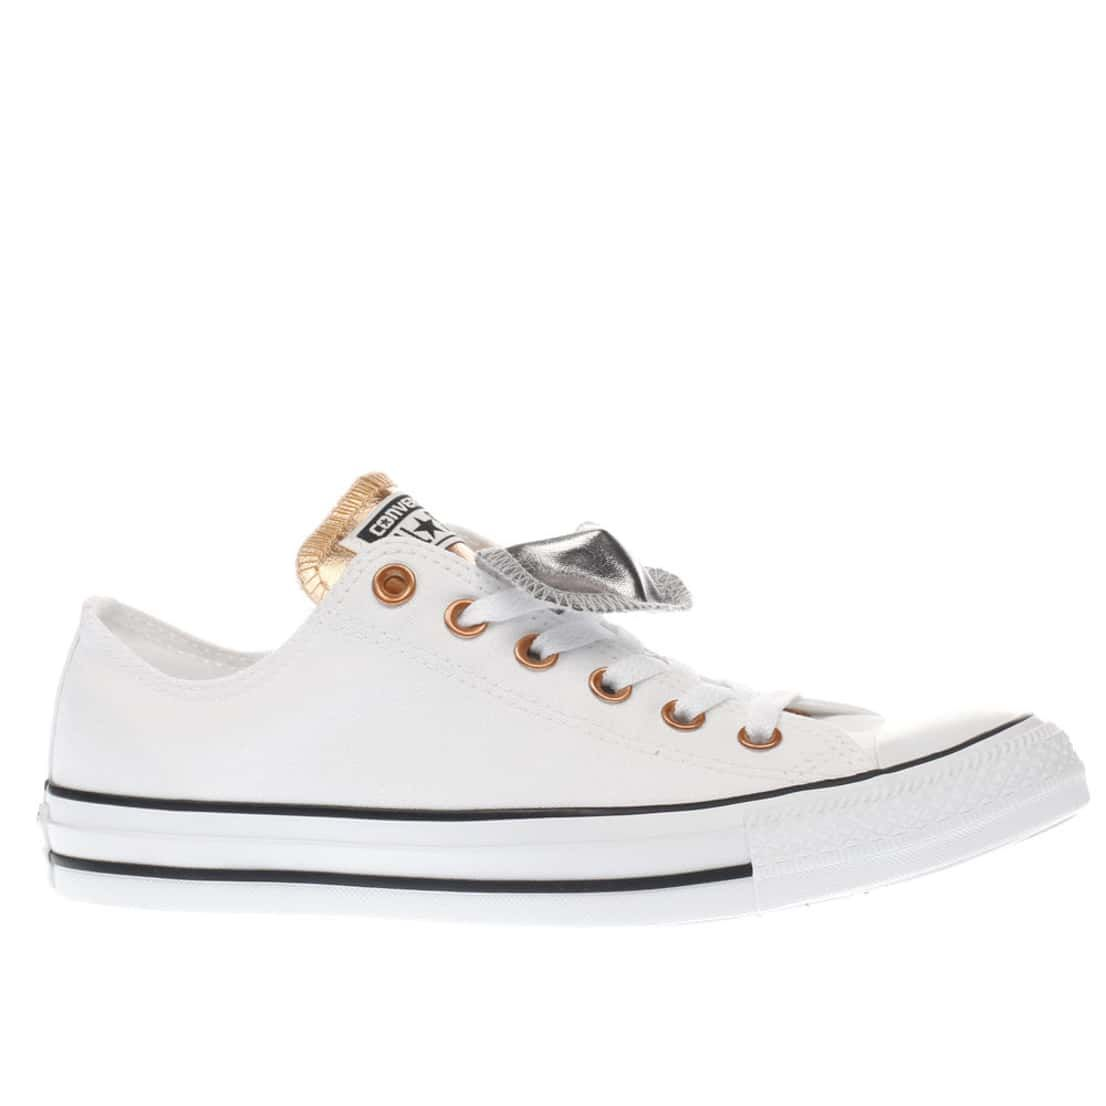 35c1c5bc2e84 ... discount code for womens silver bronze converse all star double tongue  ox trainers schuh 5a43b 03ccc ...